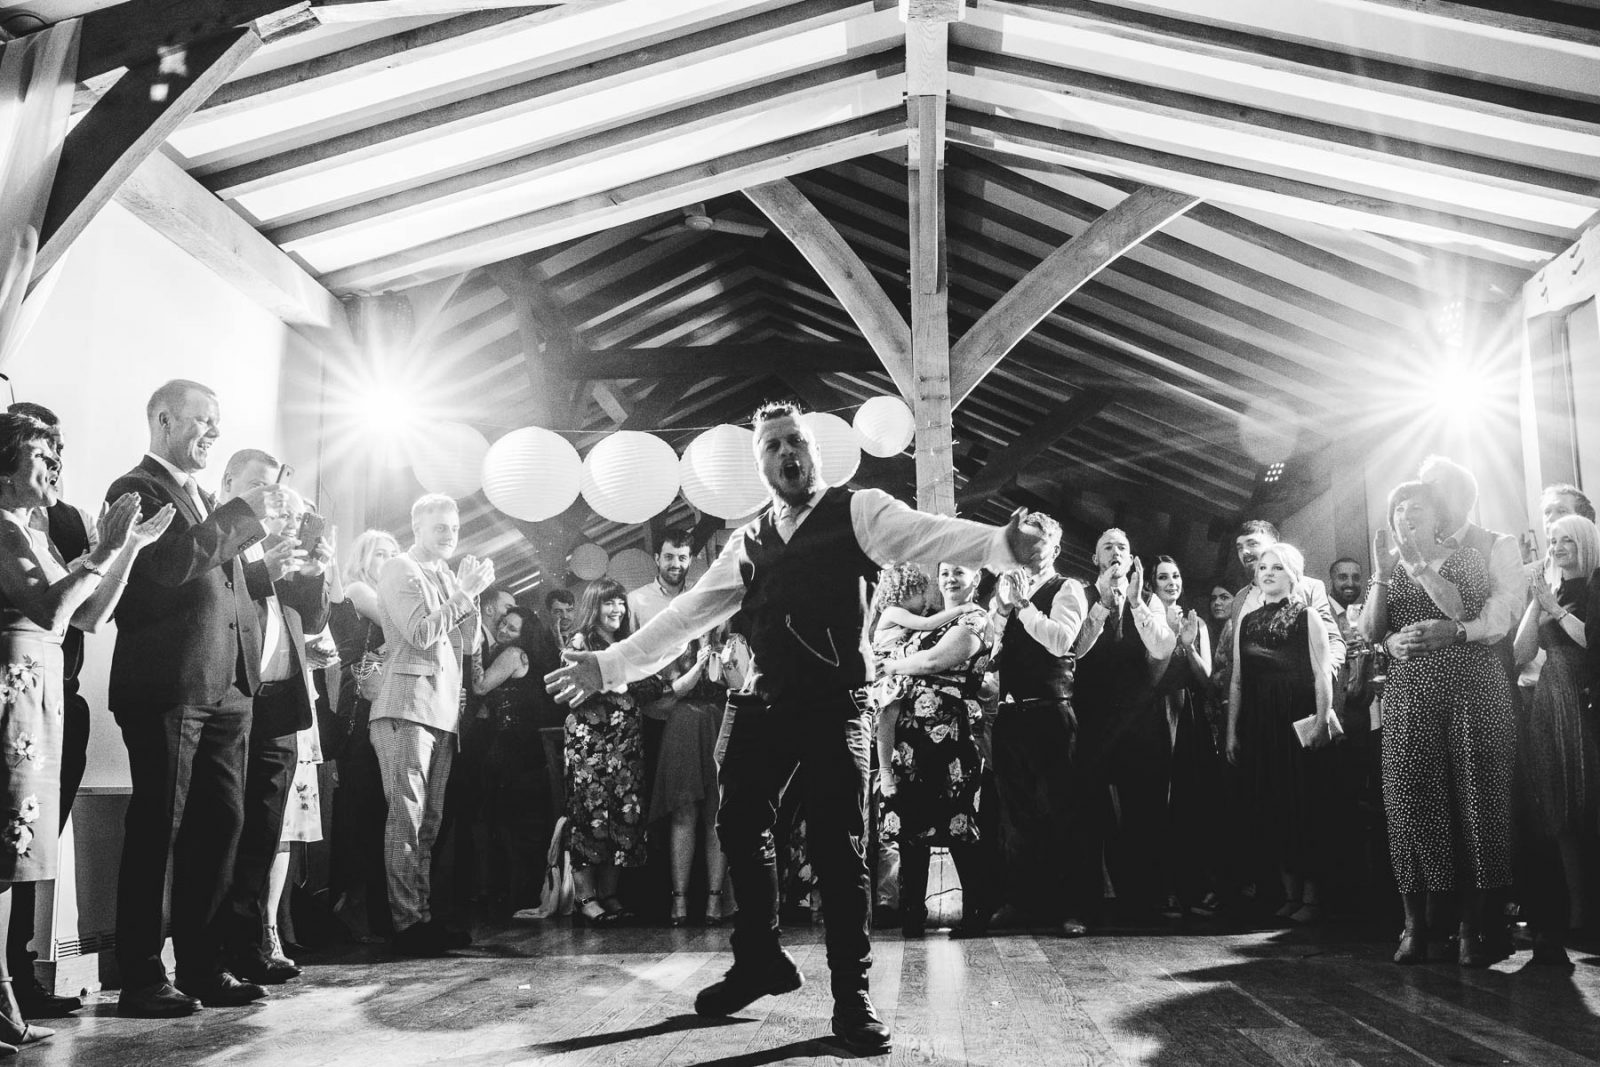 How much wedding photography coverage do i need?